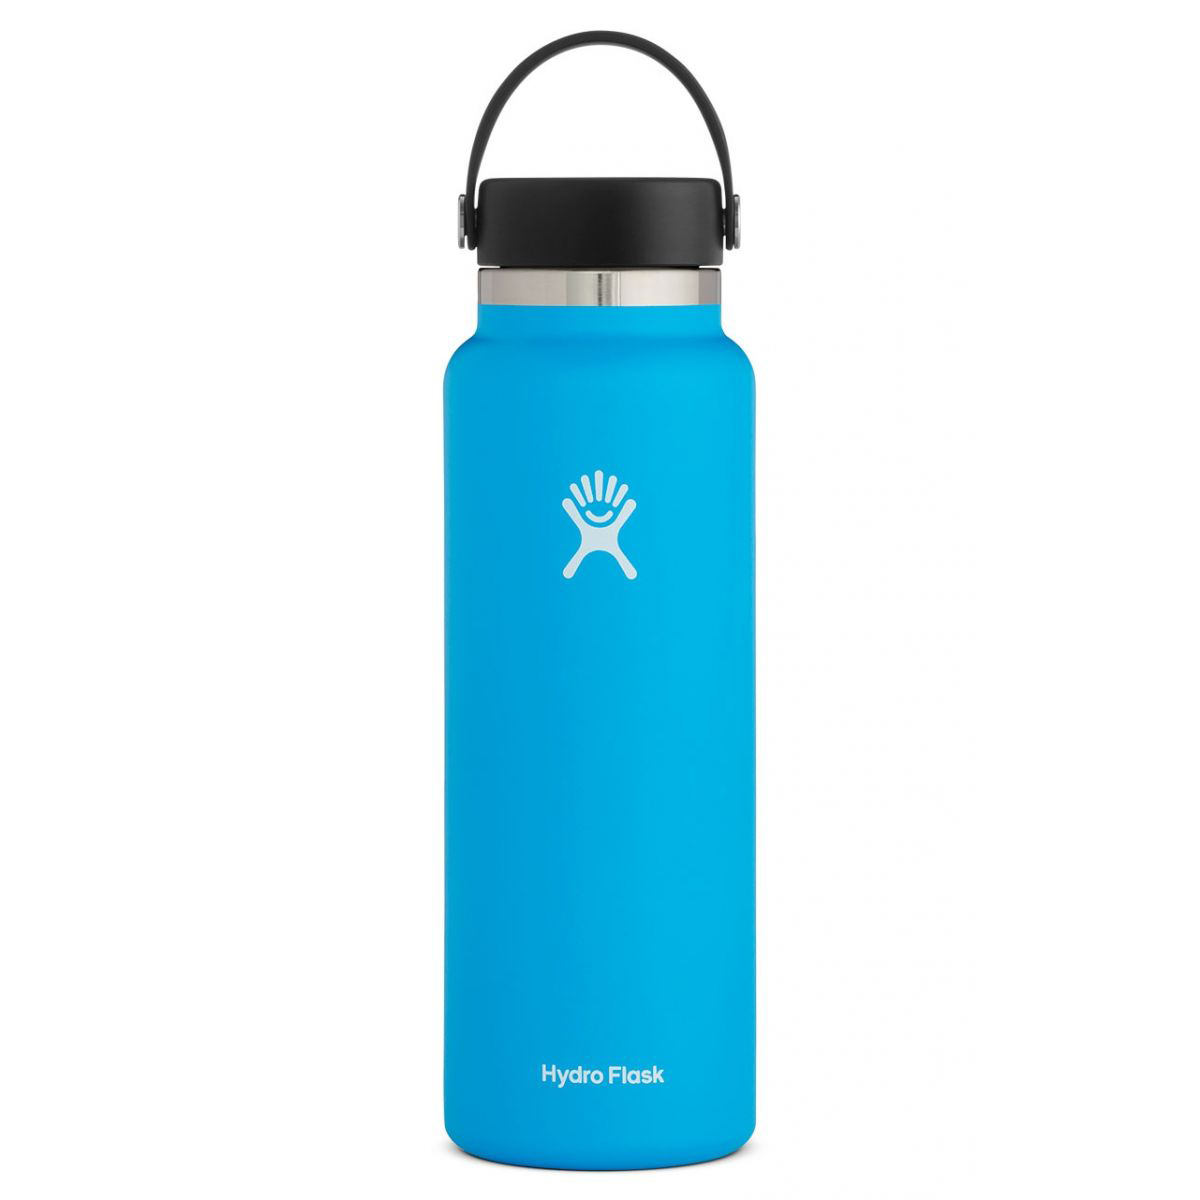 Hydro Flask 40 oz Wide Mouth Bottle - Color: Pacific - Size: 40OZ, Pacific, large, image 1